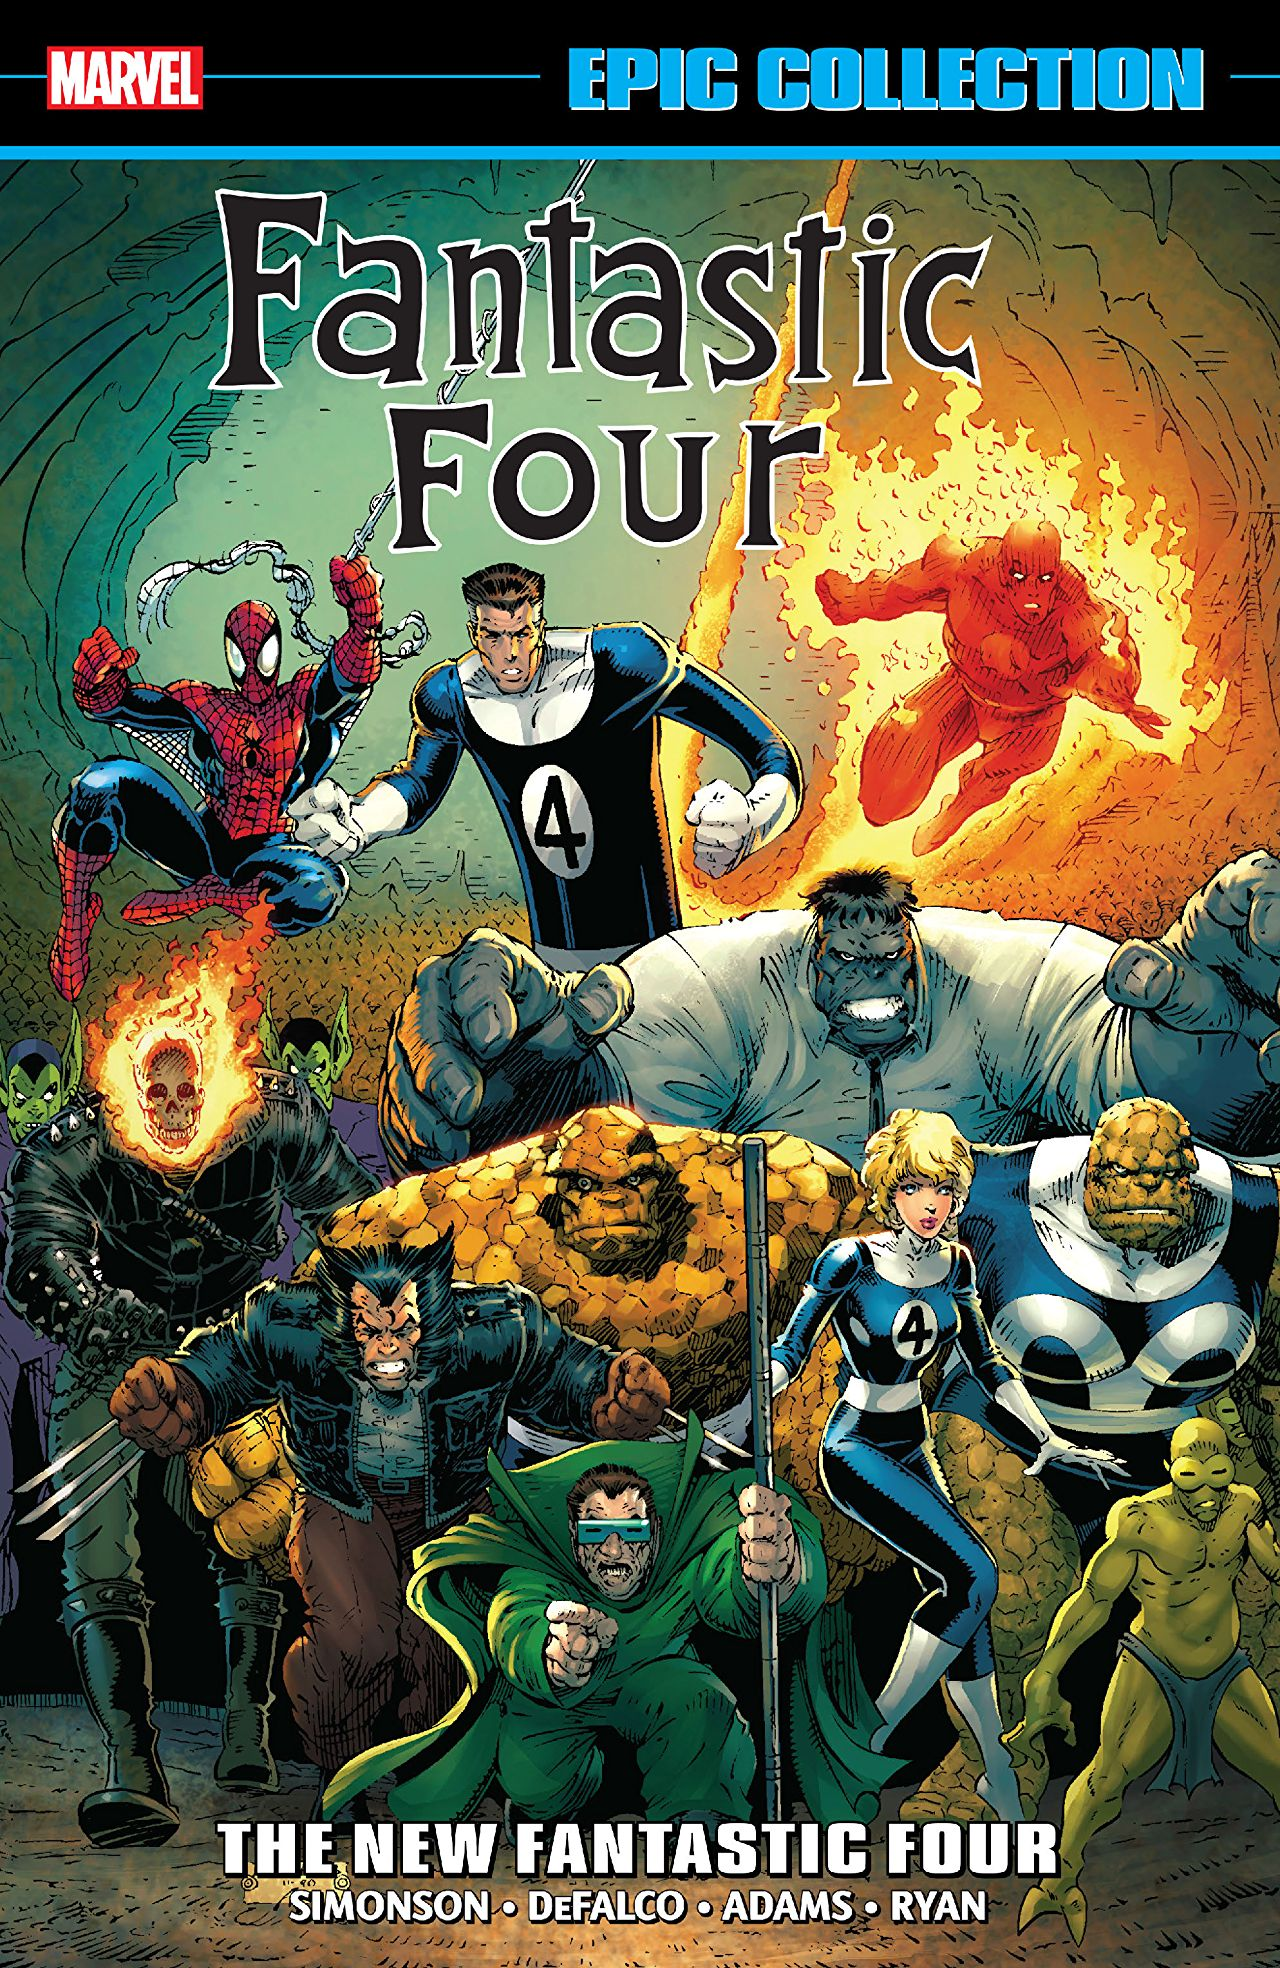 'Fantastic Four Epic Collection: The New Fantastic Four' review: Massive and loaded with FF history